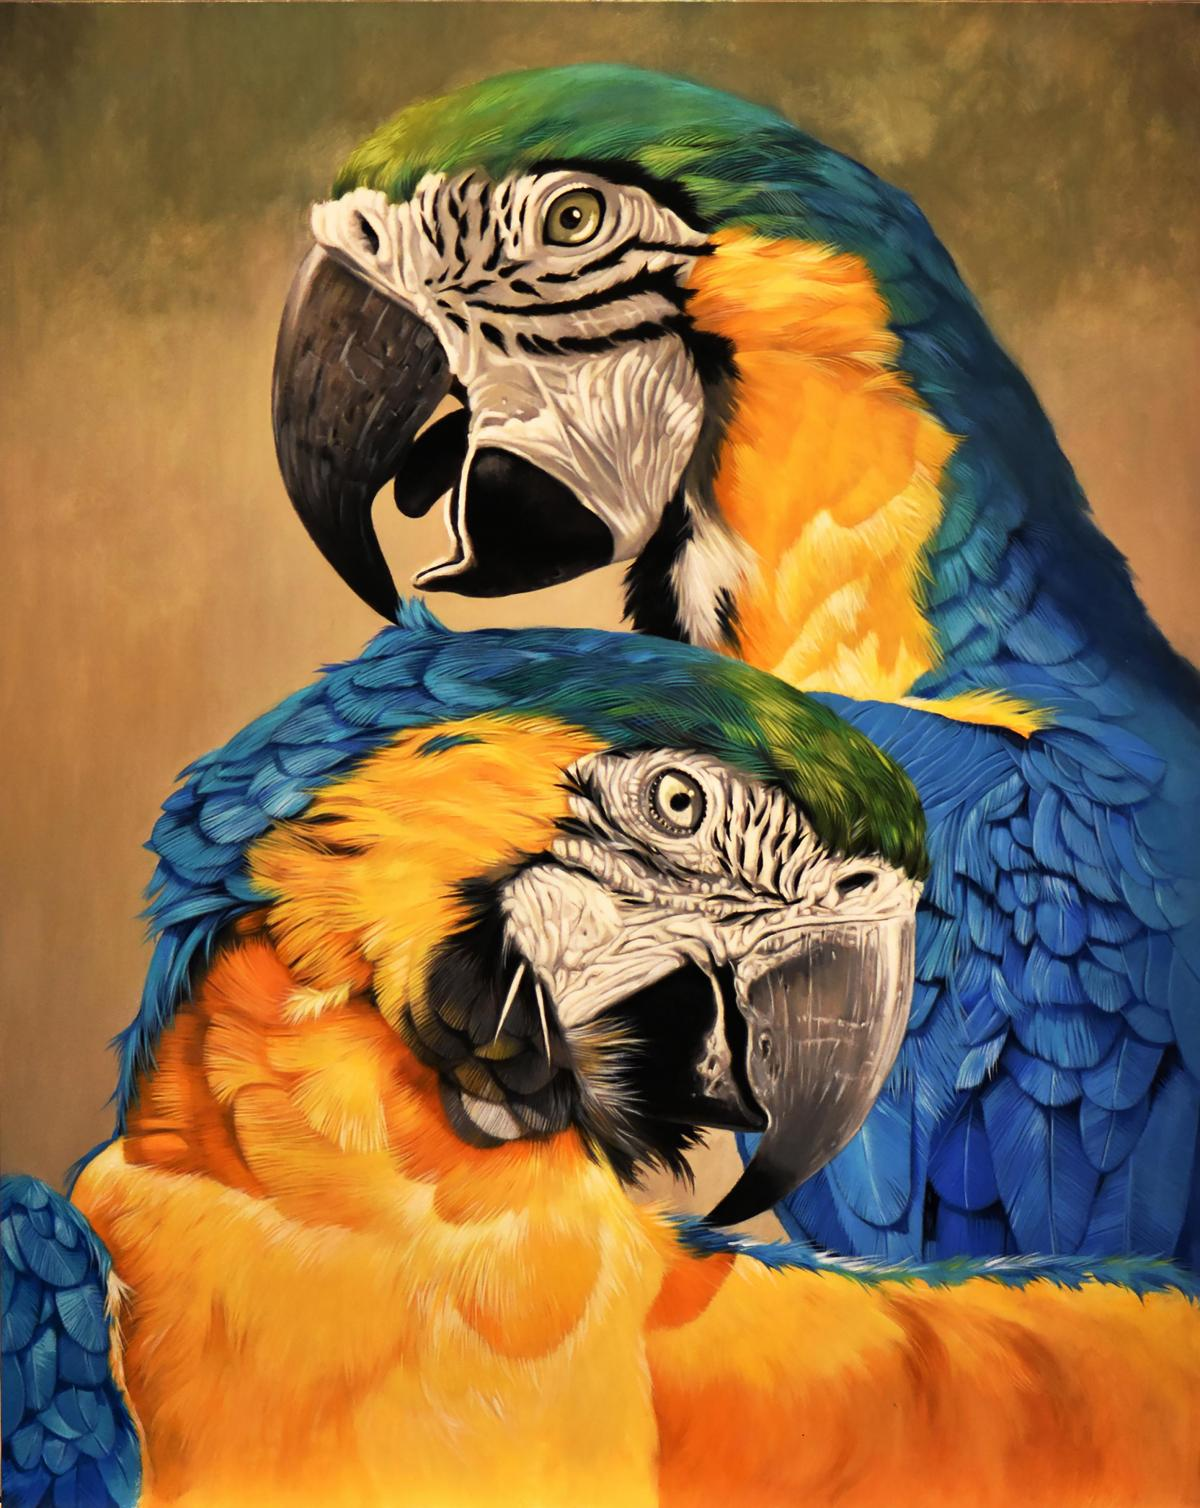 A Gentle Kiss | Wallhanging by Cathy Weiss | Artists for Conservation 2021